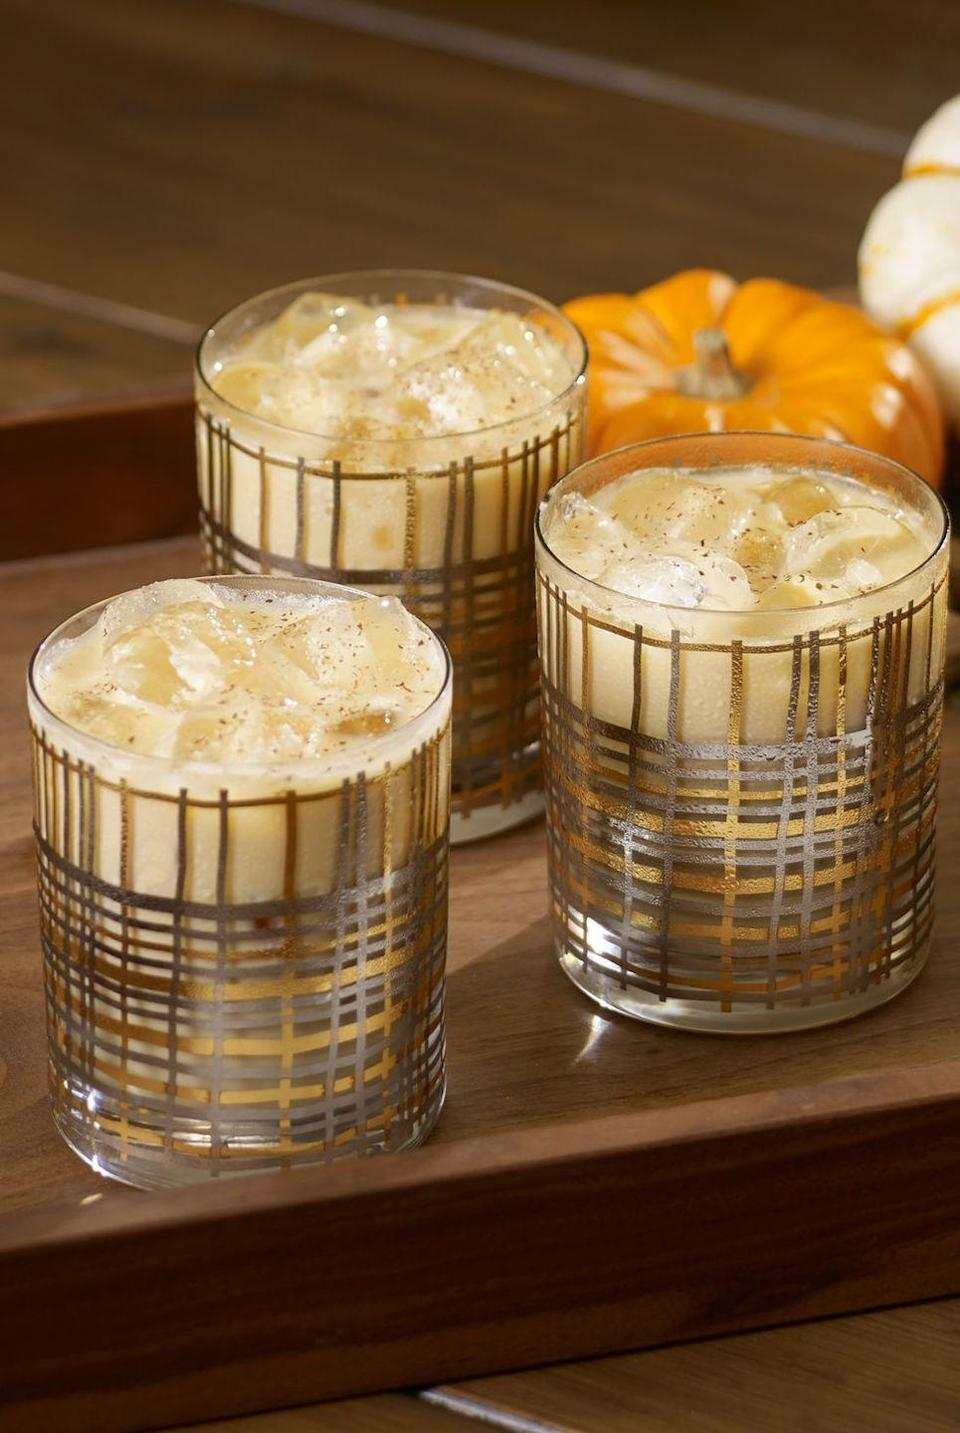 """<p><strong>Ingredients</strong></p><p>1 oz pumpkin spice Kahlua<br>2 oz vodka<br>1 oz heavy cream<br></p><p><strong>Instructions</strong></p><p>Rim rocks glass with sprinkles or sugar. Combine Kahlua, vodka, and cream into glass over ice. Stir lightly.</p><p><em>From </em><a href=""""http://www.wolfgangpuck.com/catering-events"""" rel=""""nofollow noopener"""" target=""""_blank"""" data-ylk=""""slk:Wolfgang Puck Catering"""" class=""""link rapid-noclick-resp""""><em>Wolfgang Puck Catering</em></a></p>"""